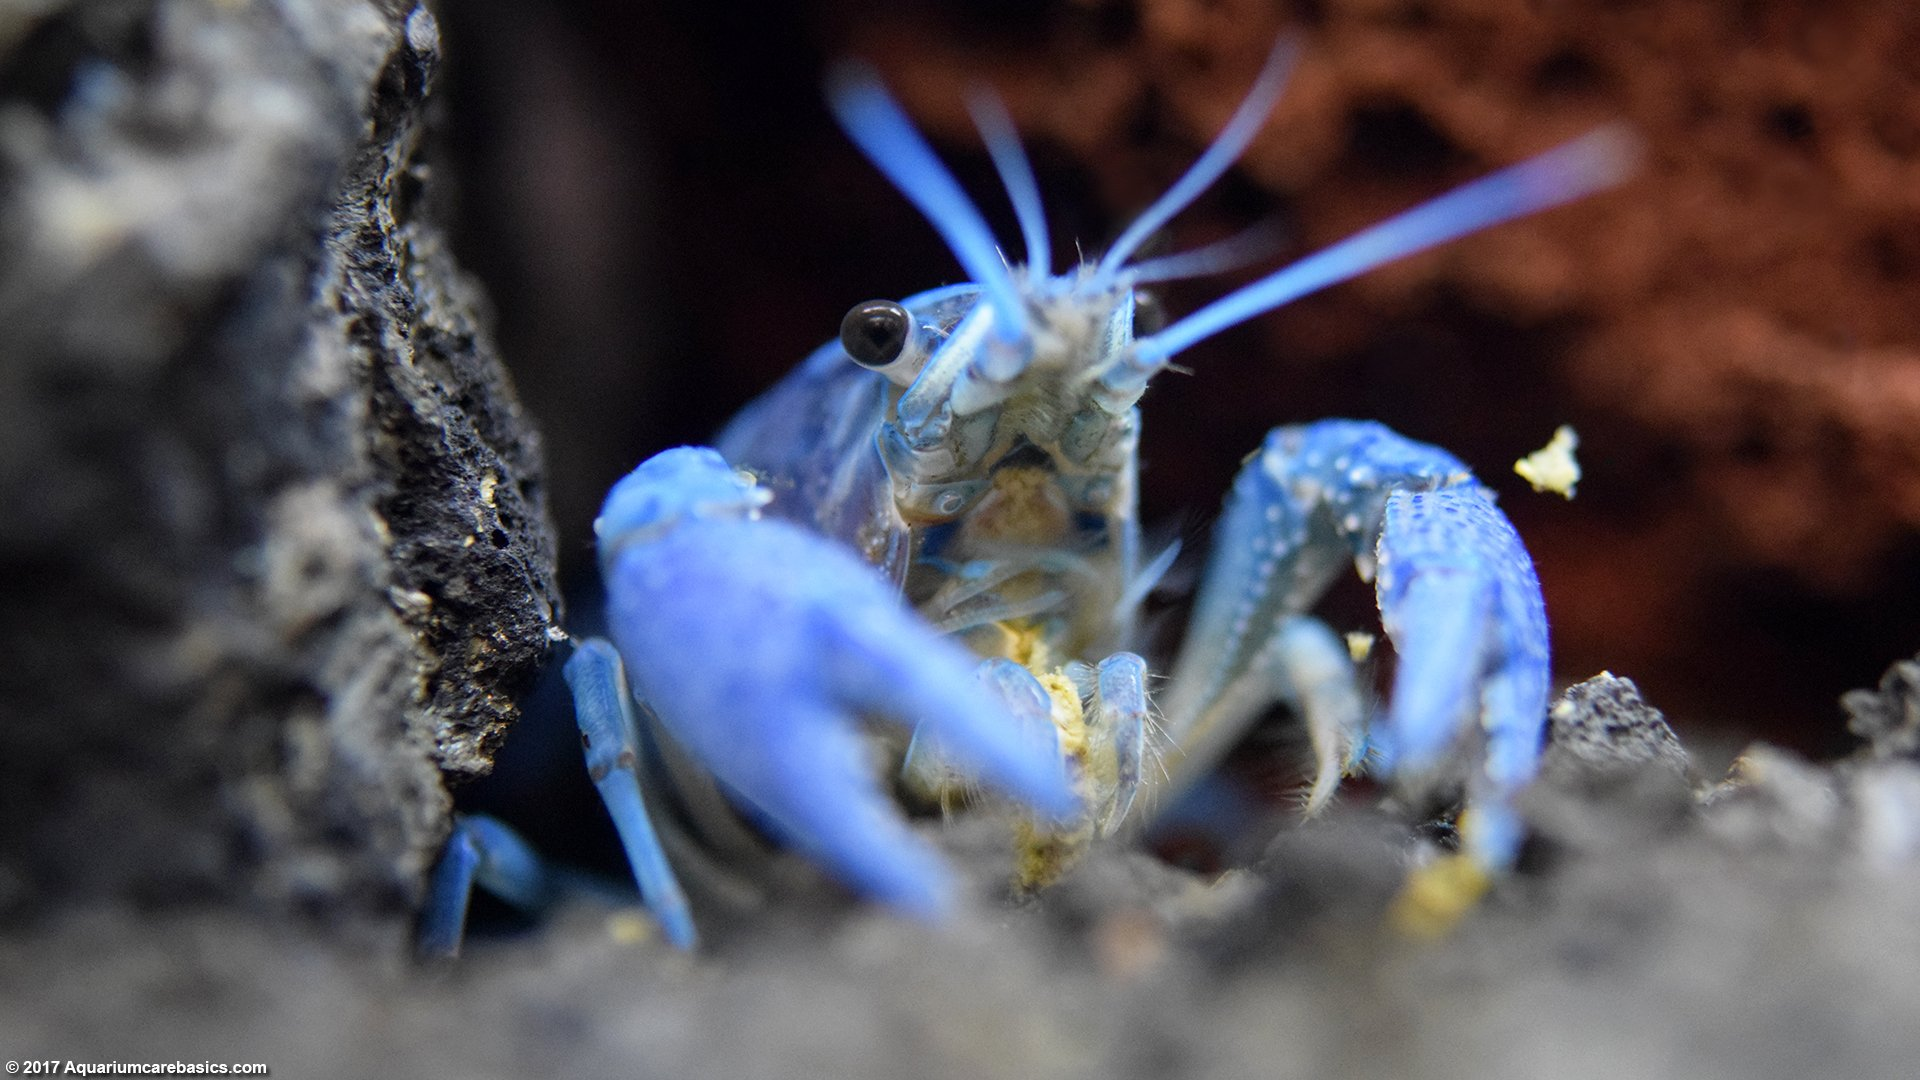 Electric Blue Crayfish Large